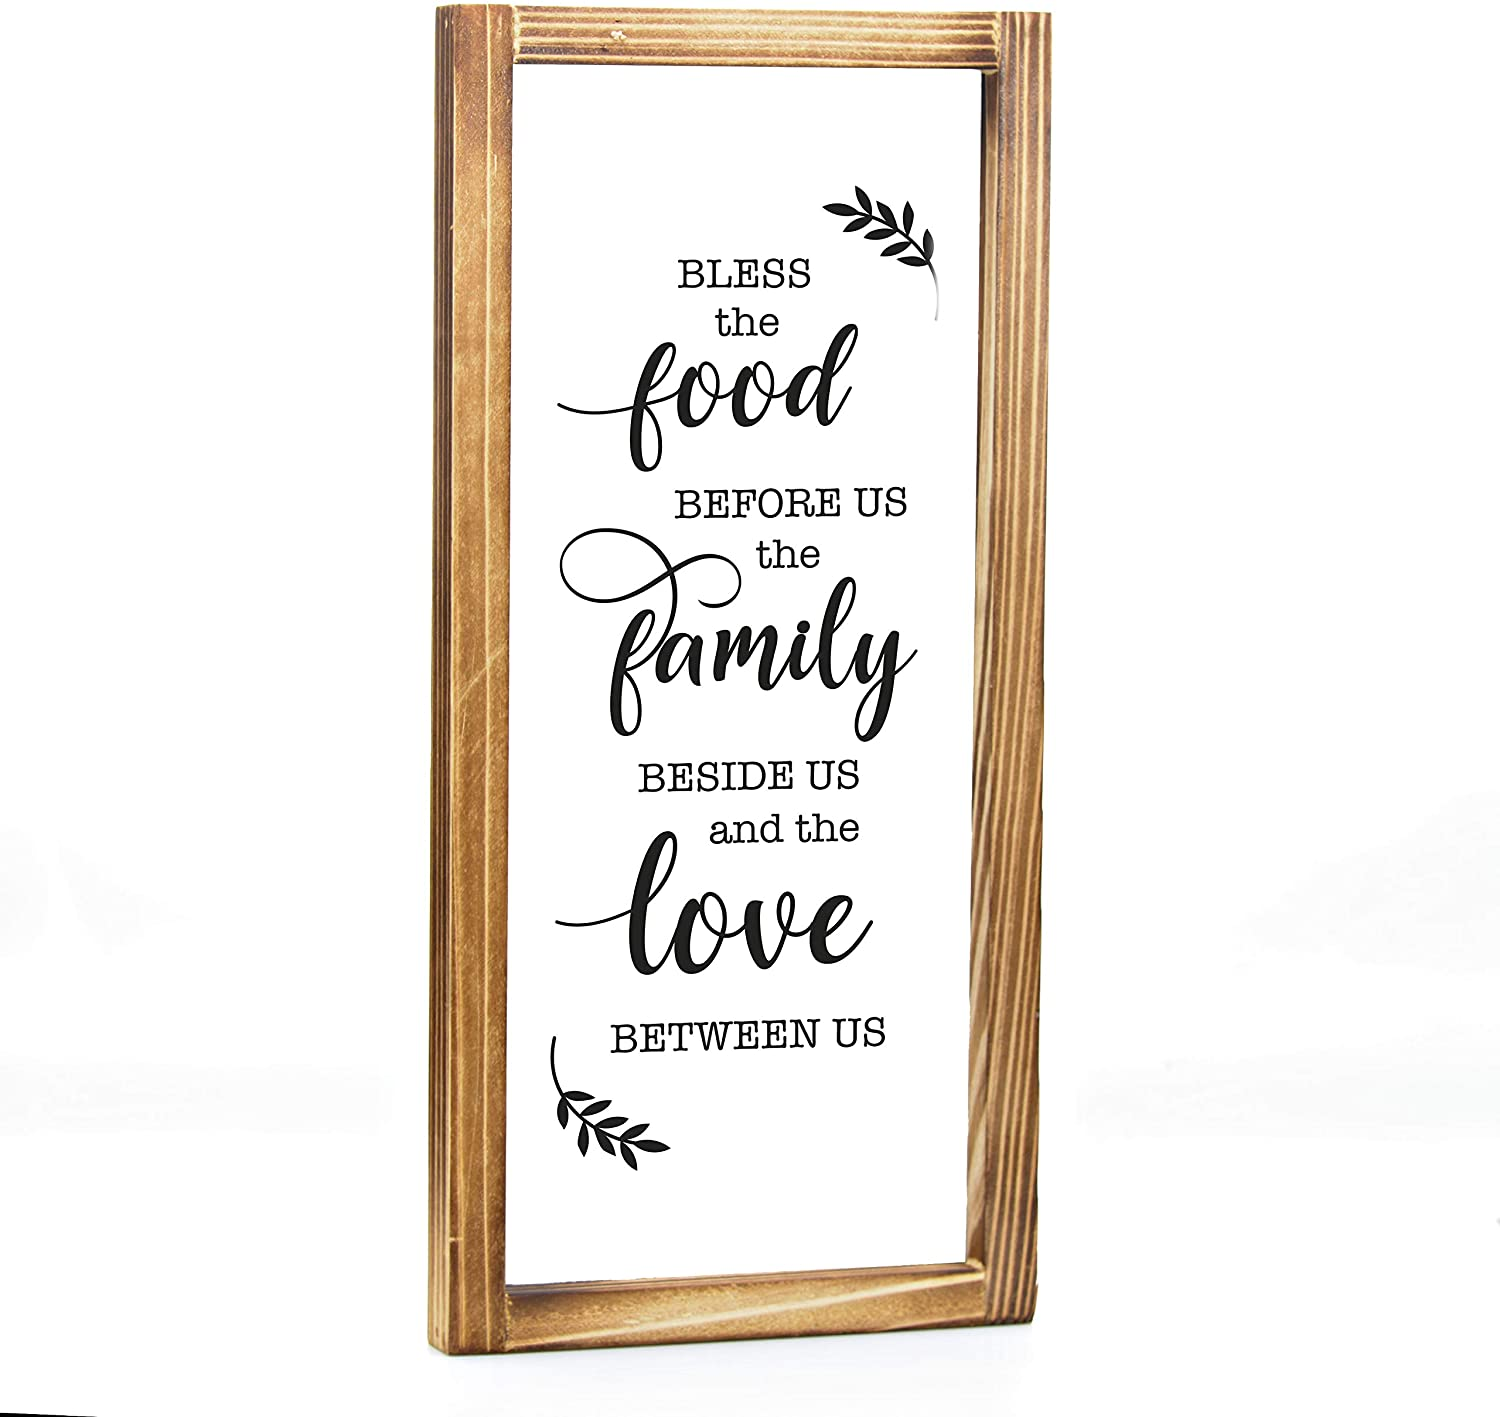 MAINEVENT Bless This Food Before Us Sign - Farmhouse Kitchen Decor, Kitchen Wall Decor, Rustic Home Decor, Country Kitchen Decor with Solid Wood Frame 8x17 Inch